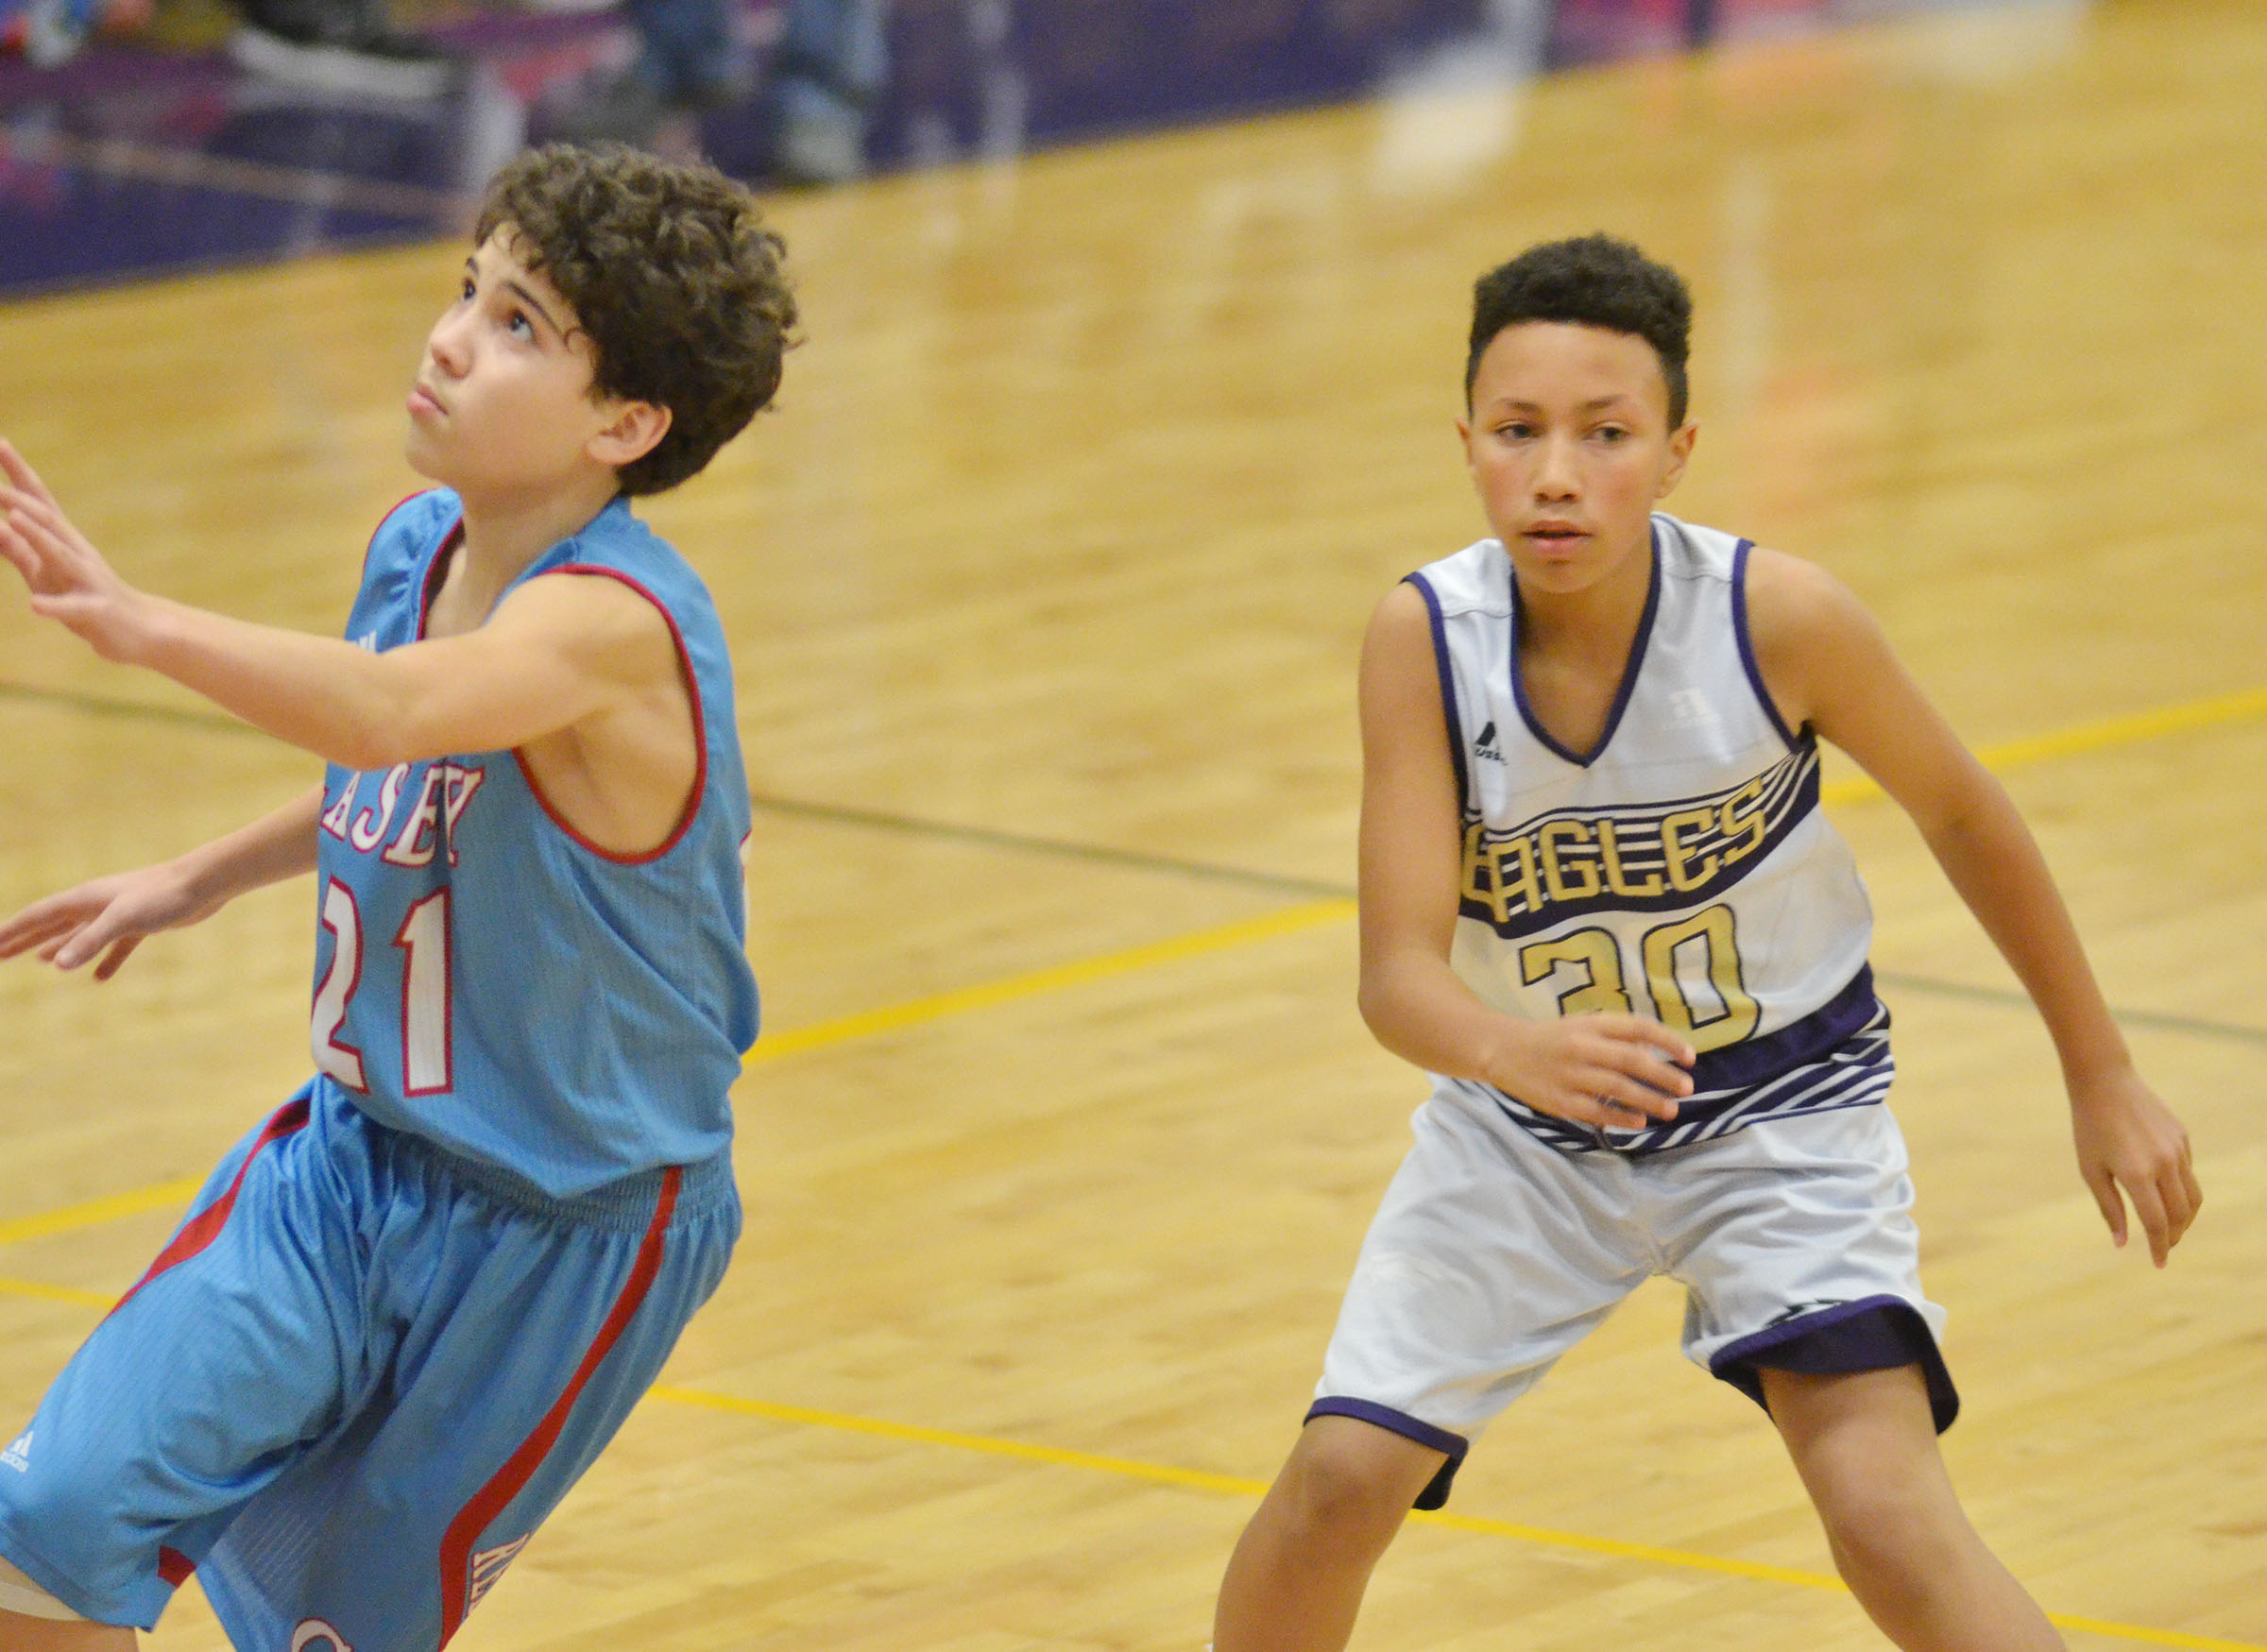 CMS eighth-grader Jastyn Shively plays defense.